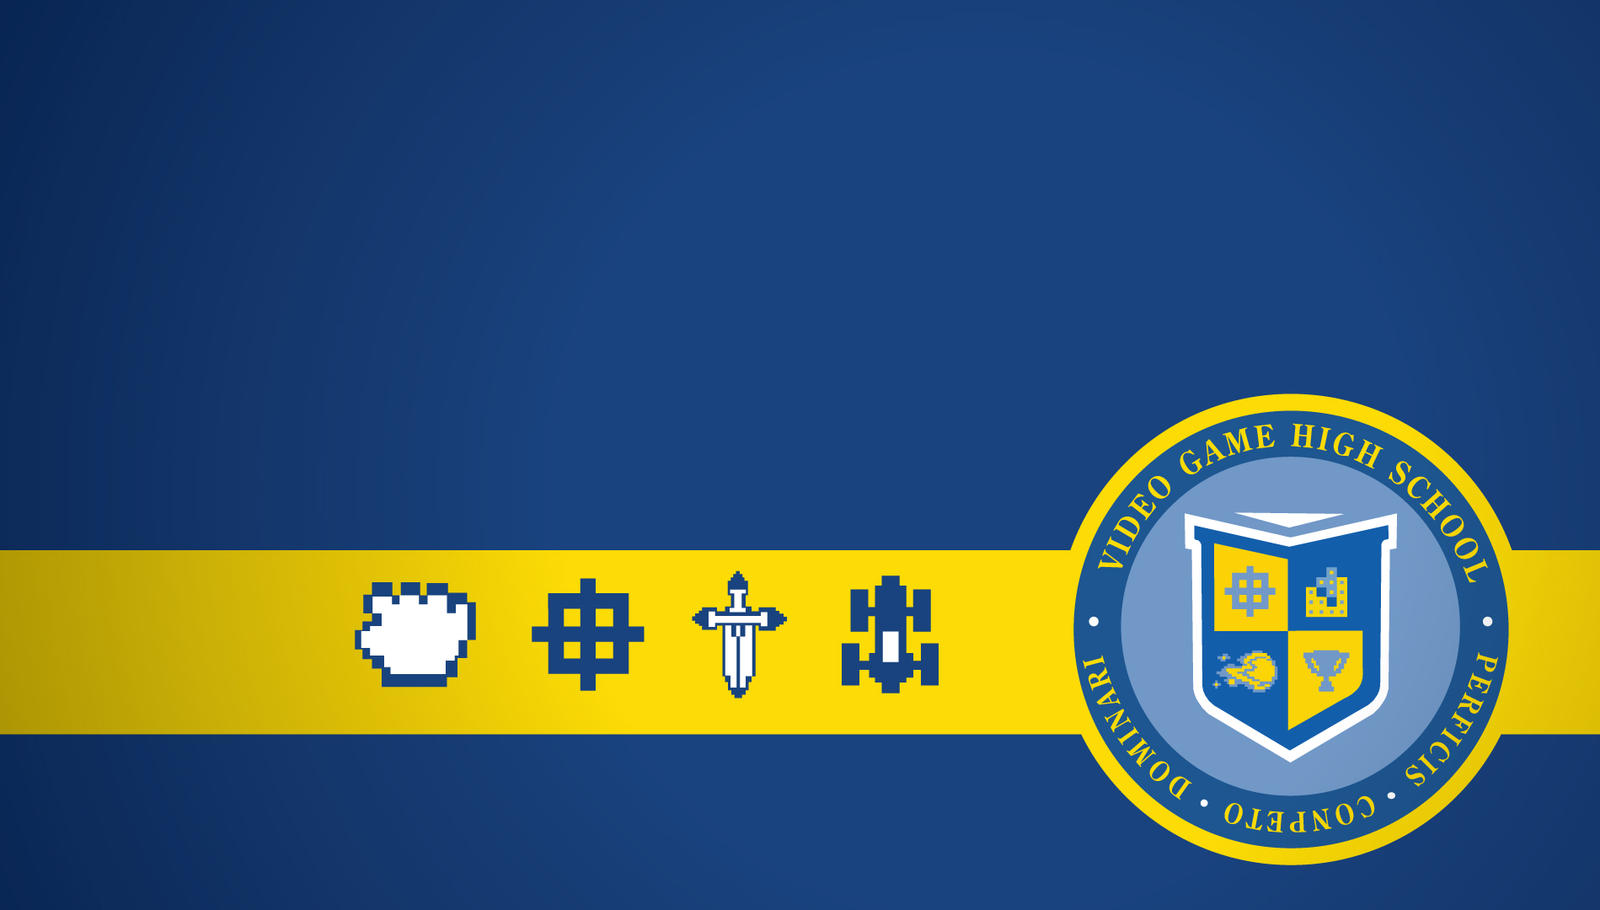 vghs wallpaper - photo #1